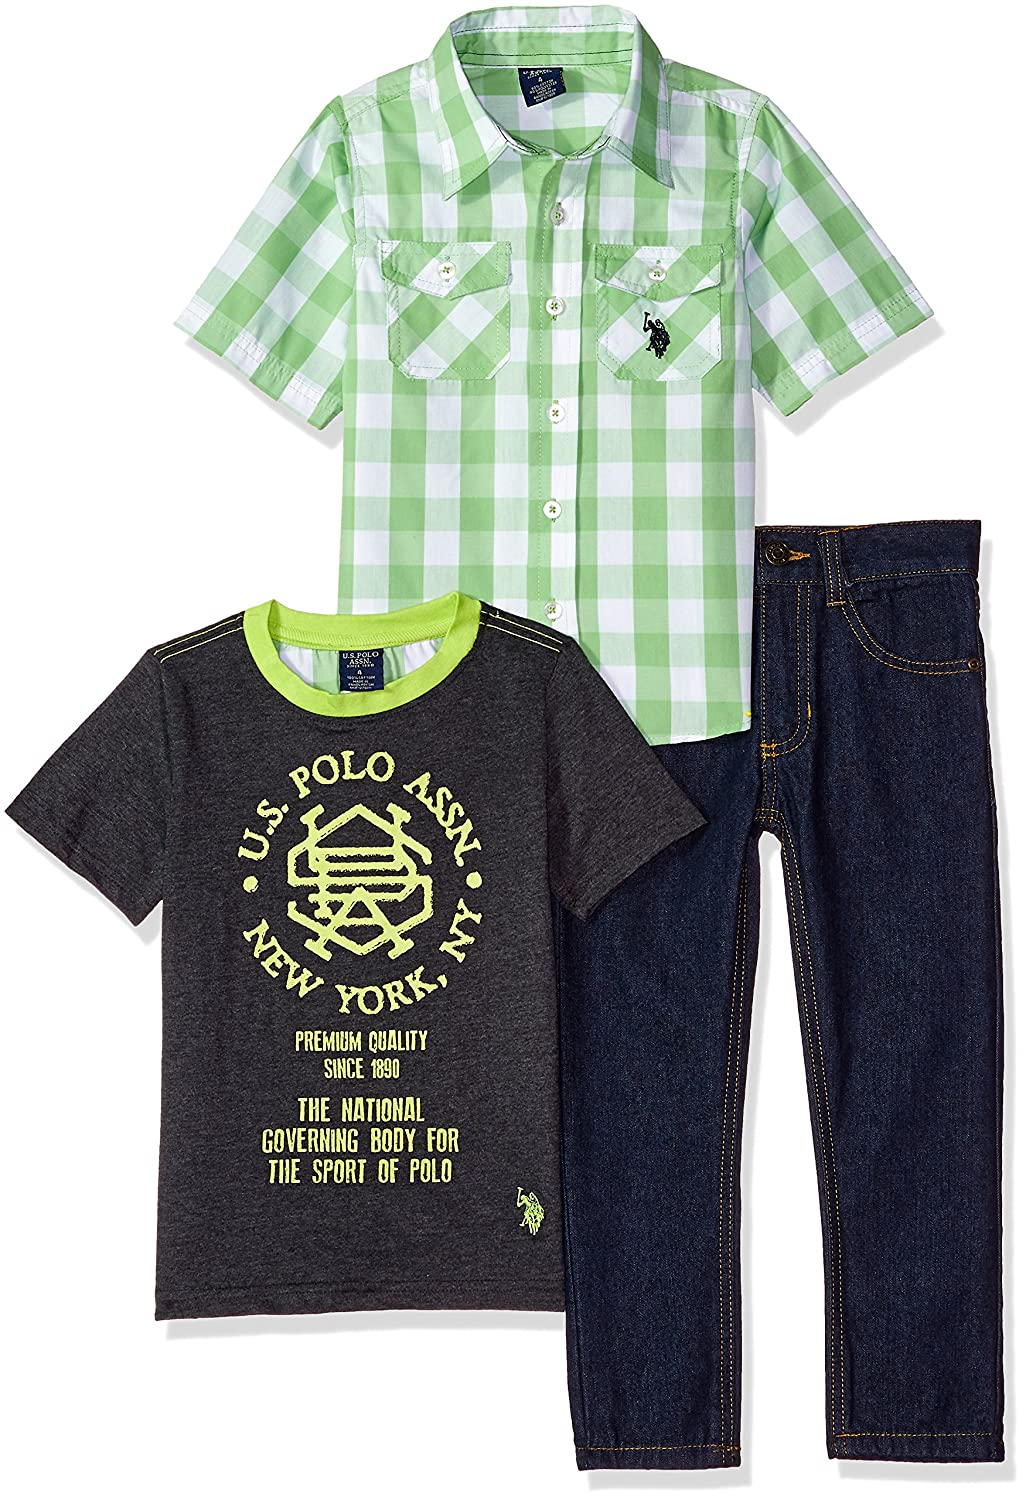 U.S. Polo Assn. Boys' Short Sleeve, T-Shirt and Pant Set SU00